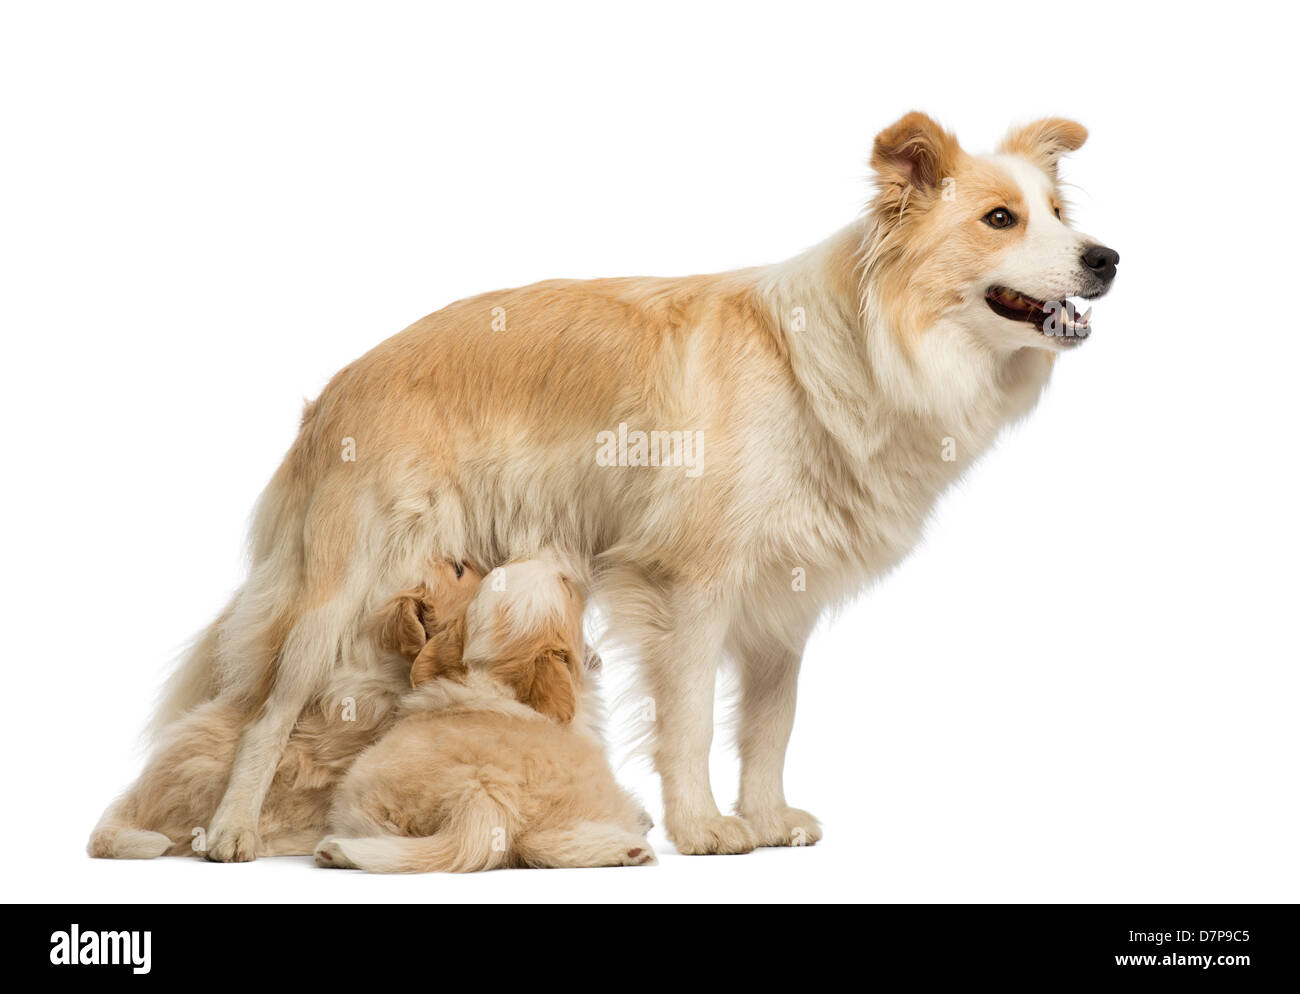 Border Collie puppies, 6 weeks old, suckling mother, 2.5 years old, in front of white background - Stock Image